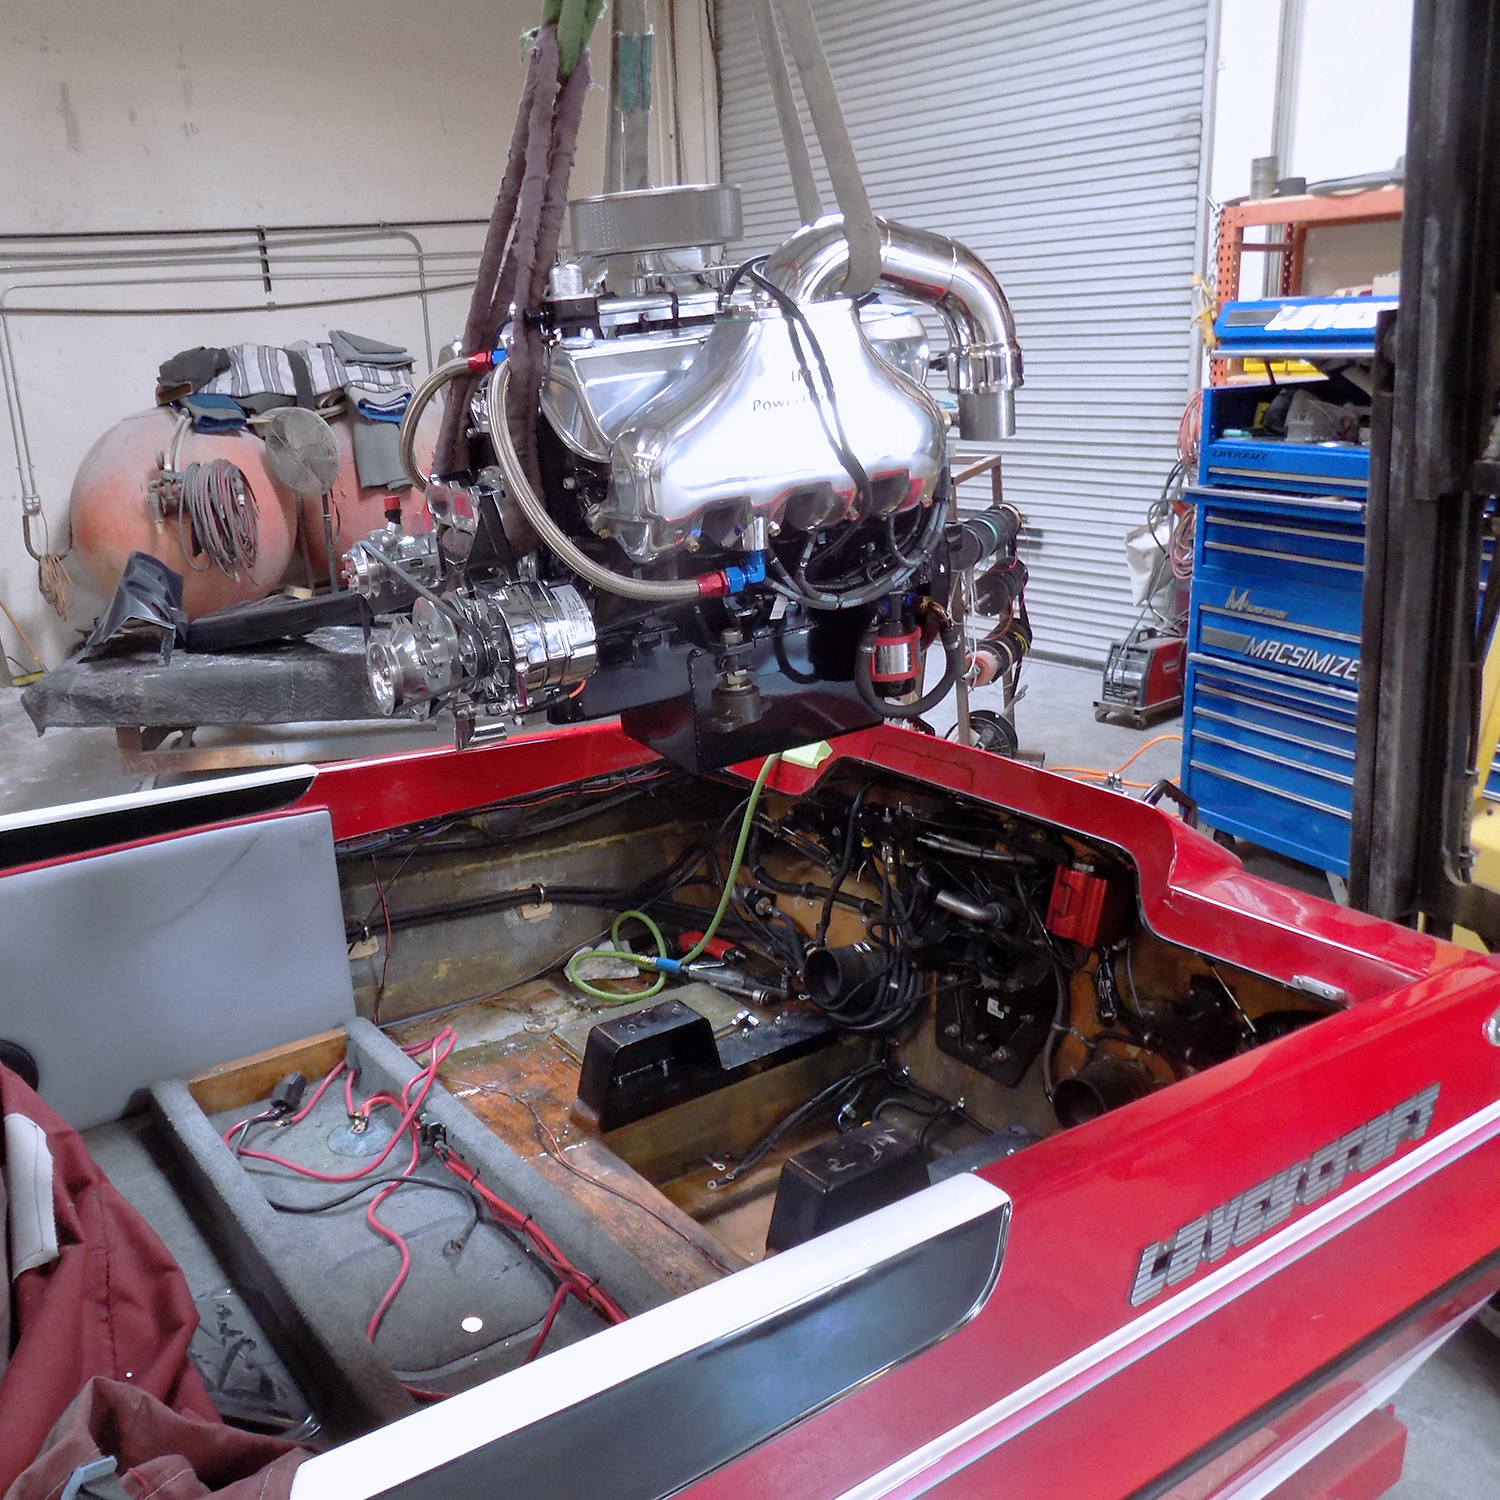 Lavey Craft Uncle Dave new Boostpower engine 20.8 Sebring - pic 5.jpg